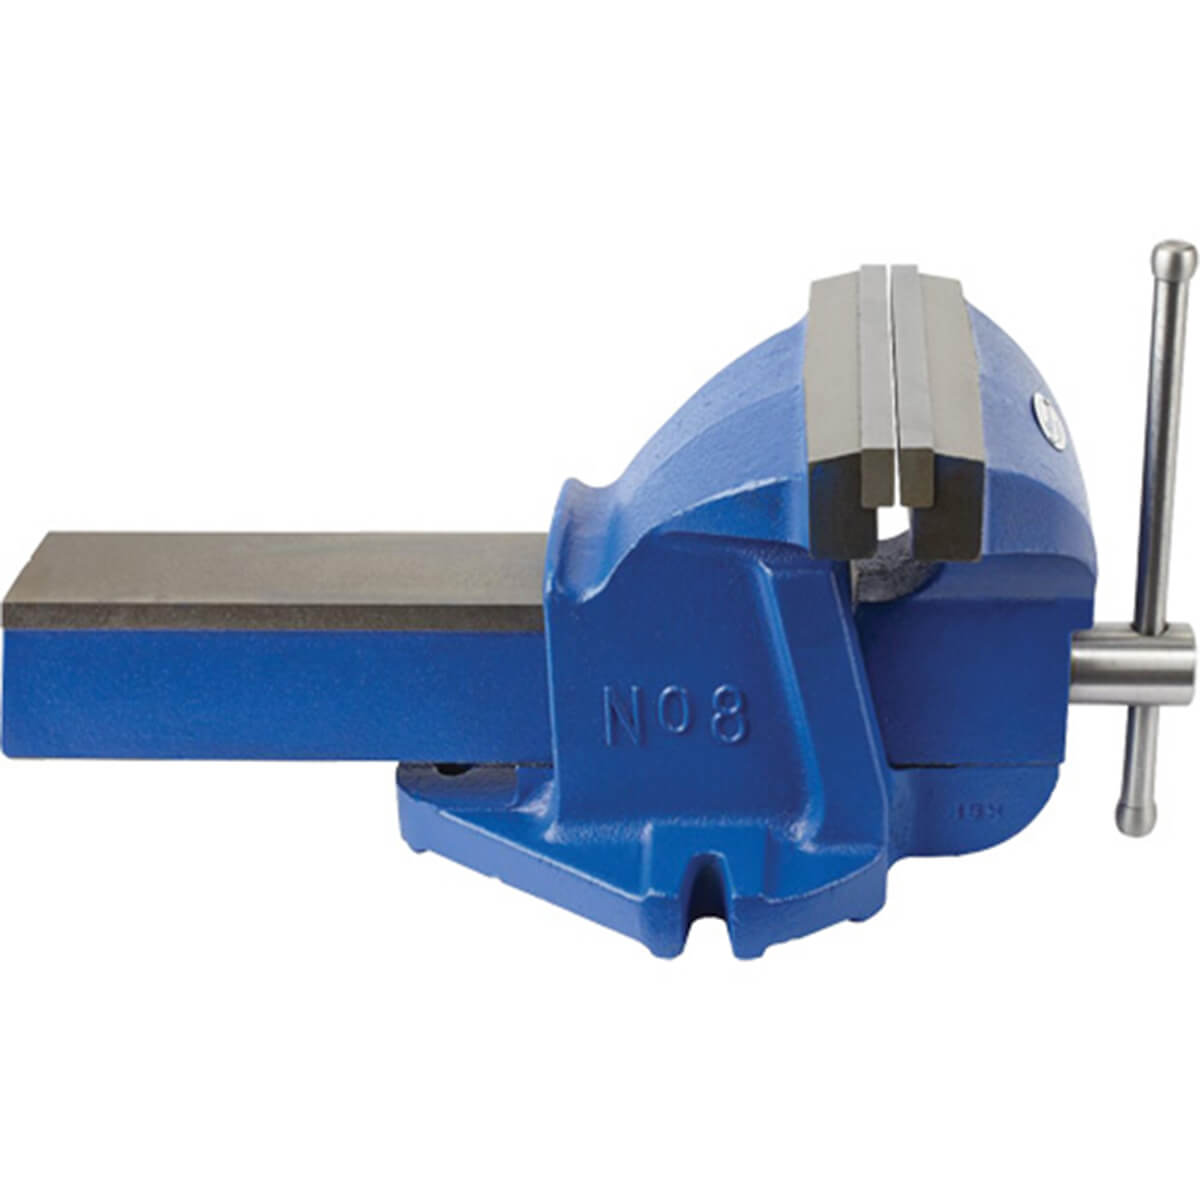 Record Mechanics Vise - 8""